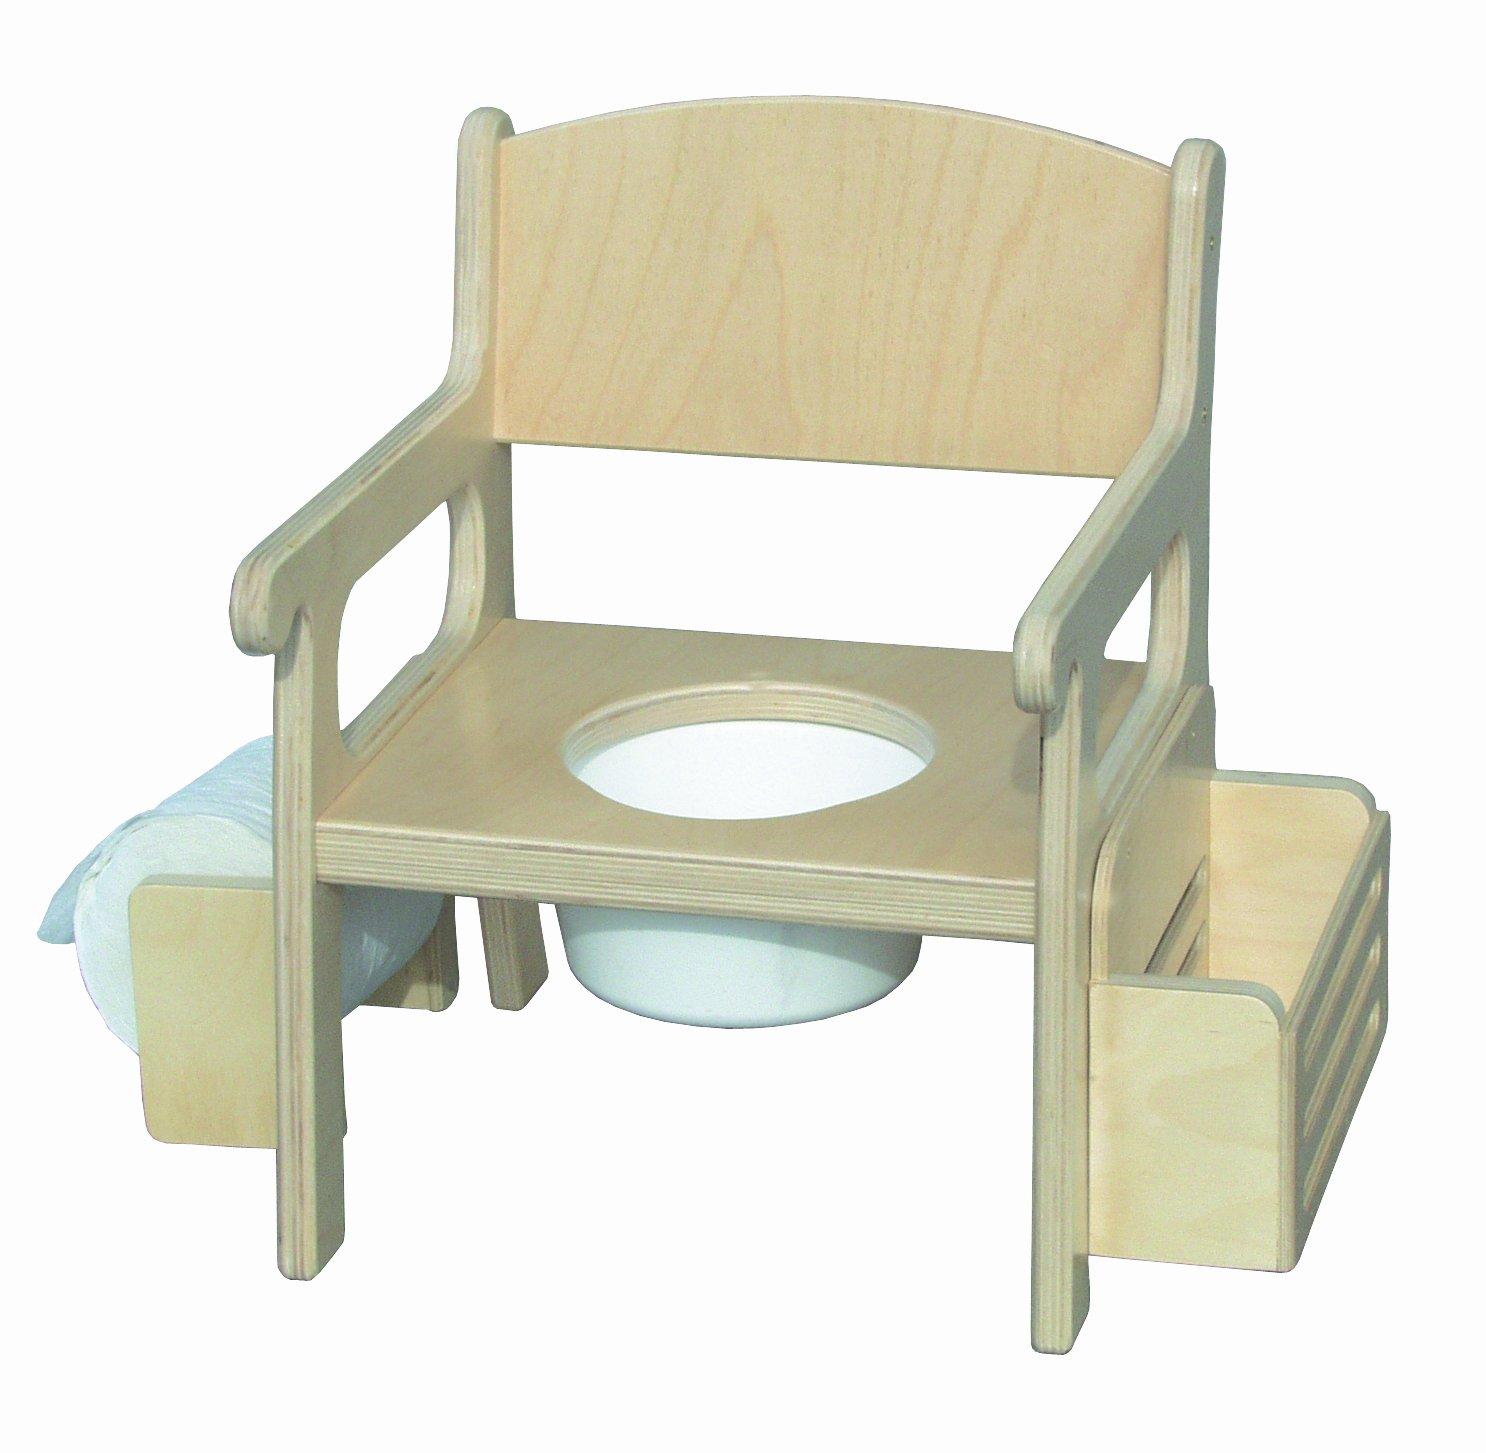 Little Colorado 028UNF Unfinished Potty Chair with Accessories